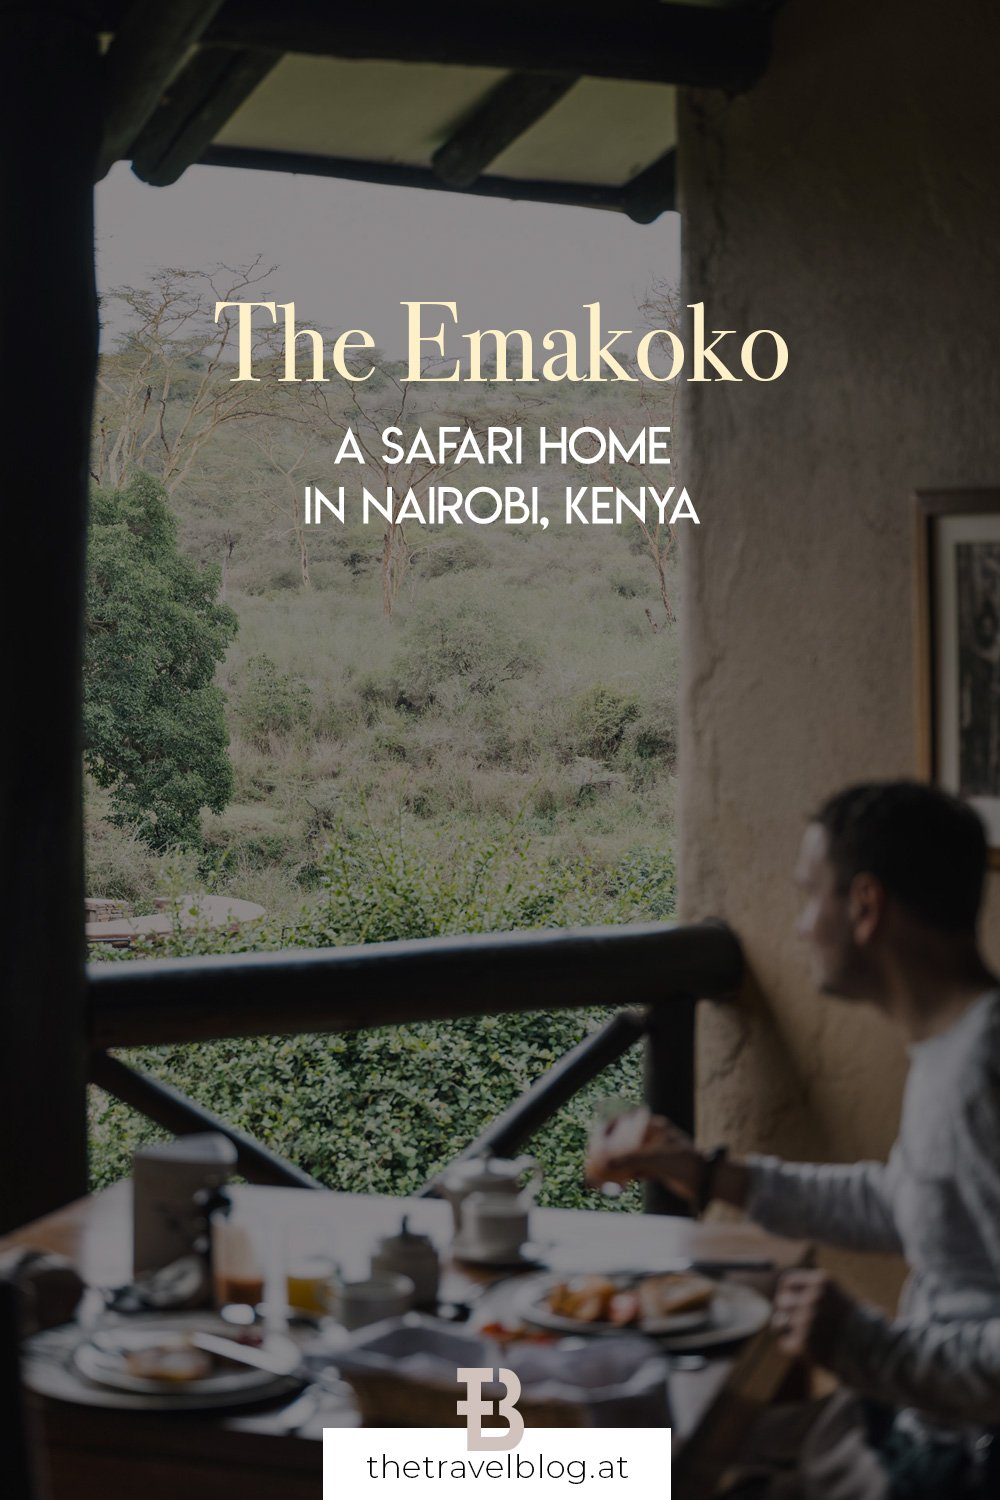 The Emakoko - a safari home in Nairobi and the perfect gateway to a safari in Kenya